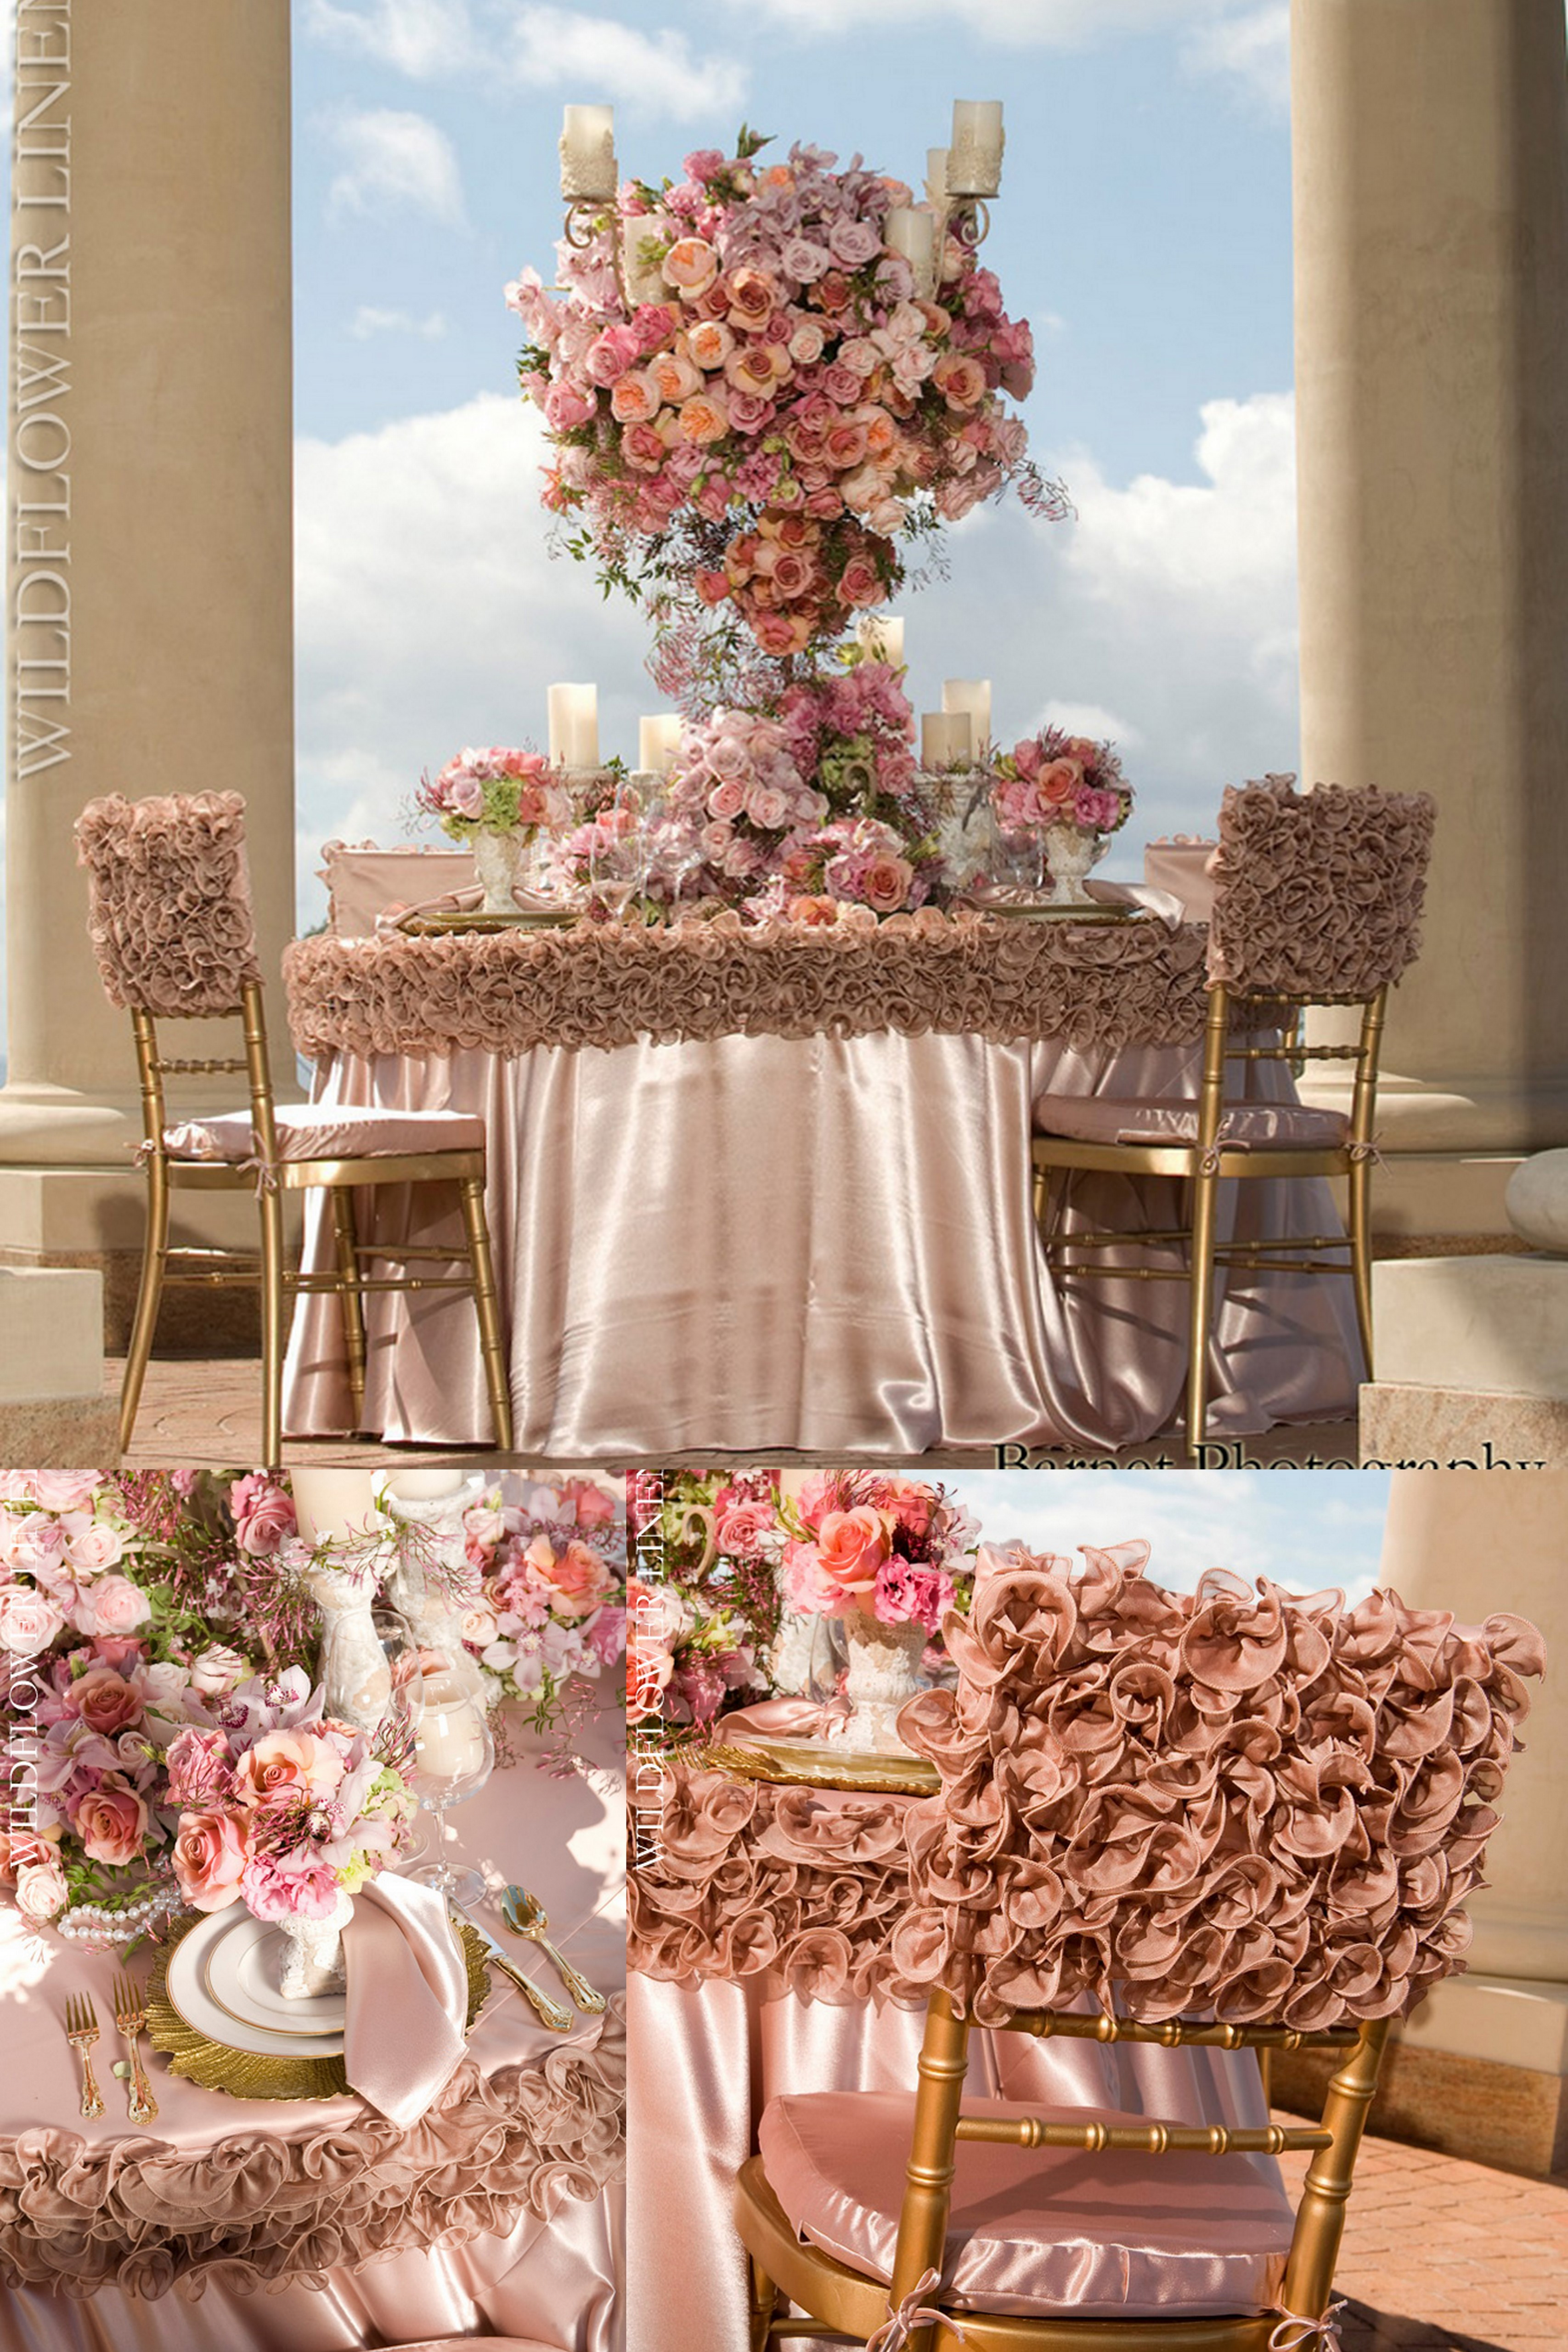 Luxury Linens From Wildflower Aislinn Events - Wedding table linens